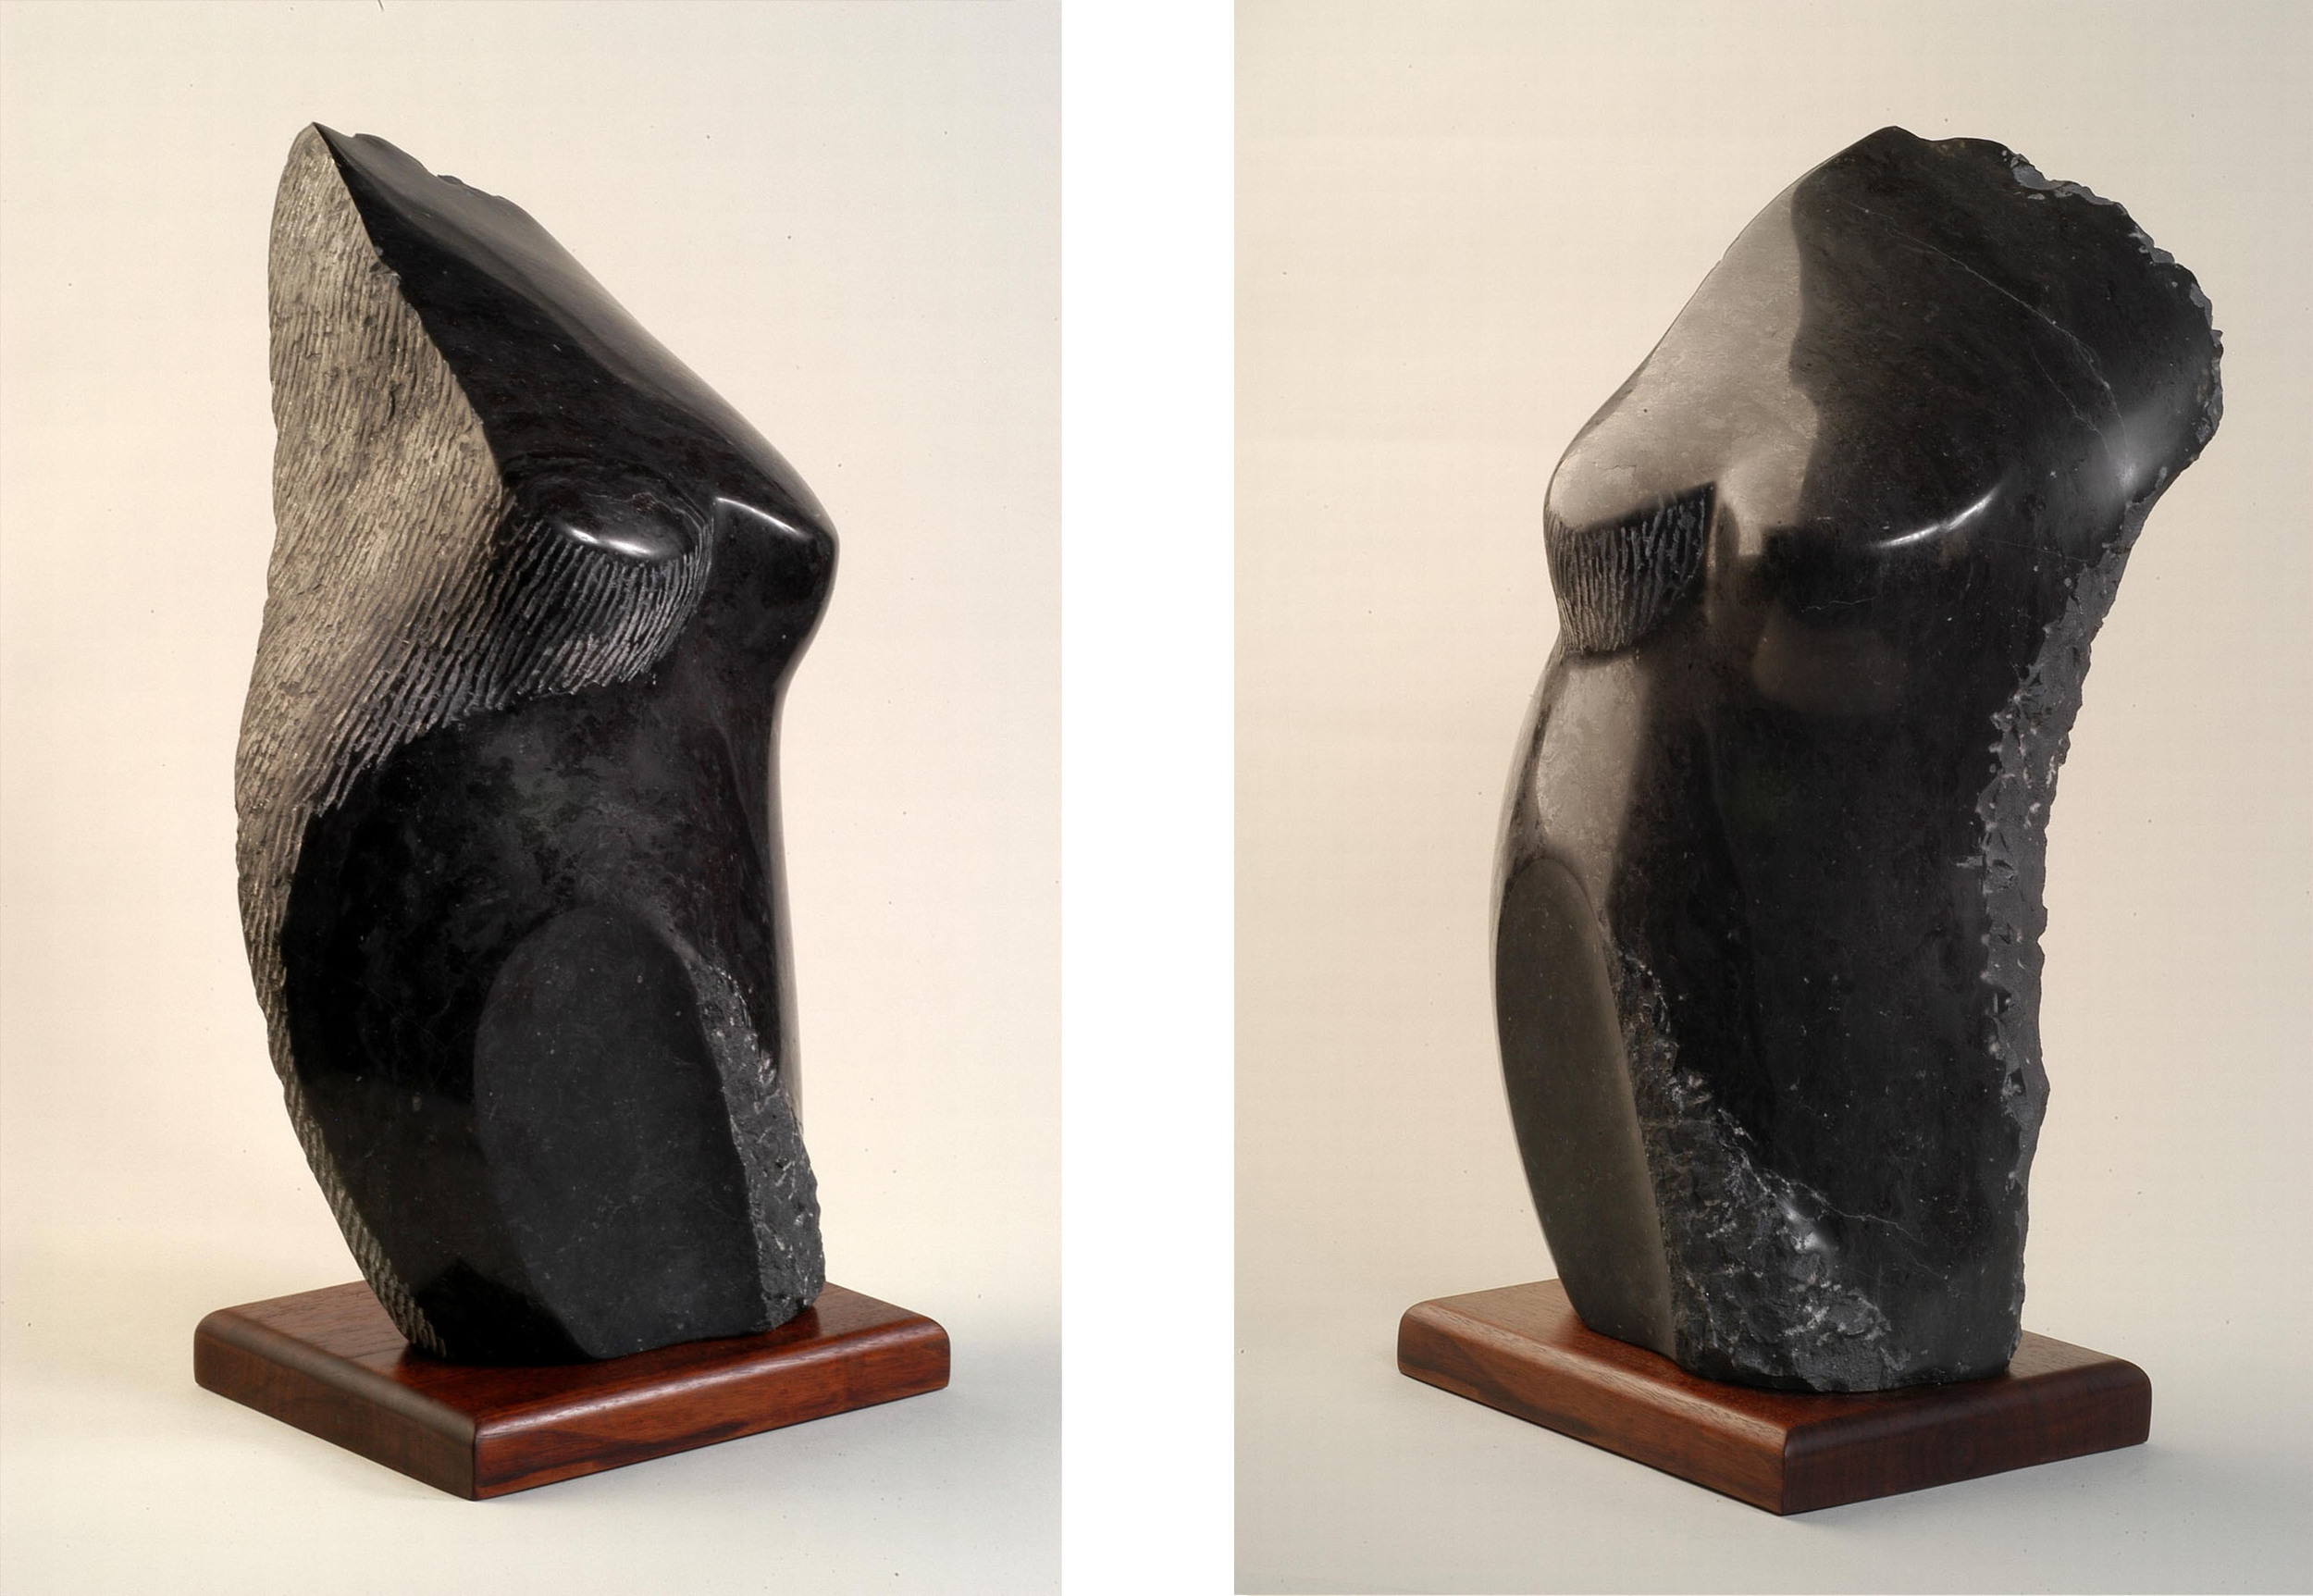 Midnight   - 20 x 12 x 8 inches - Champlain Black marble - private collection